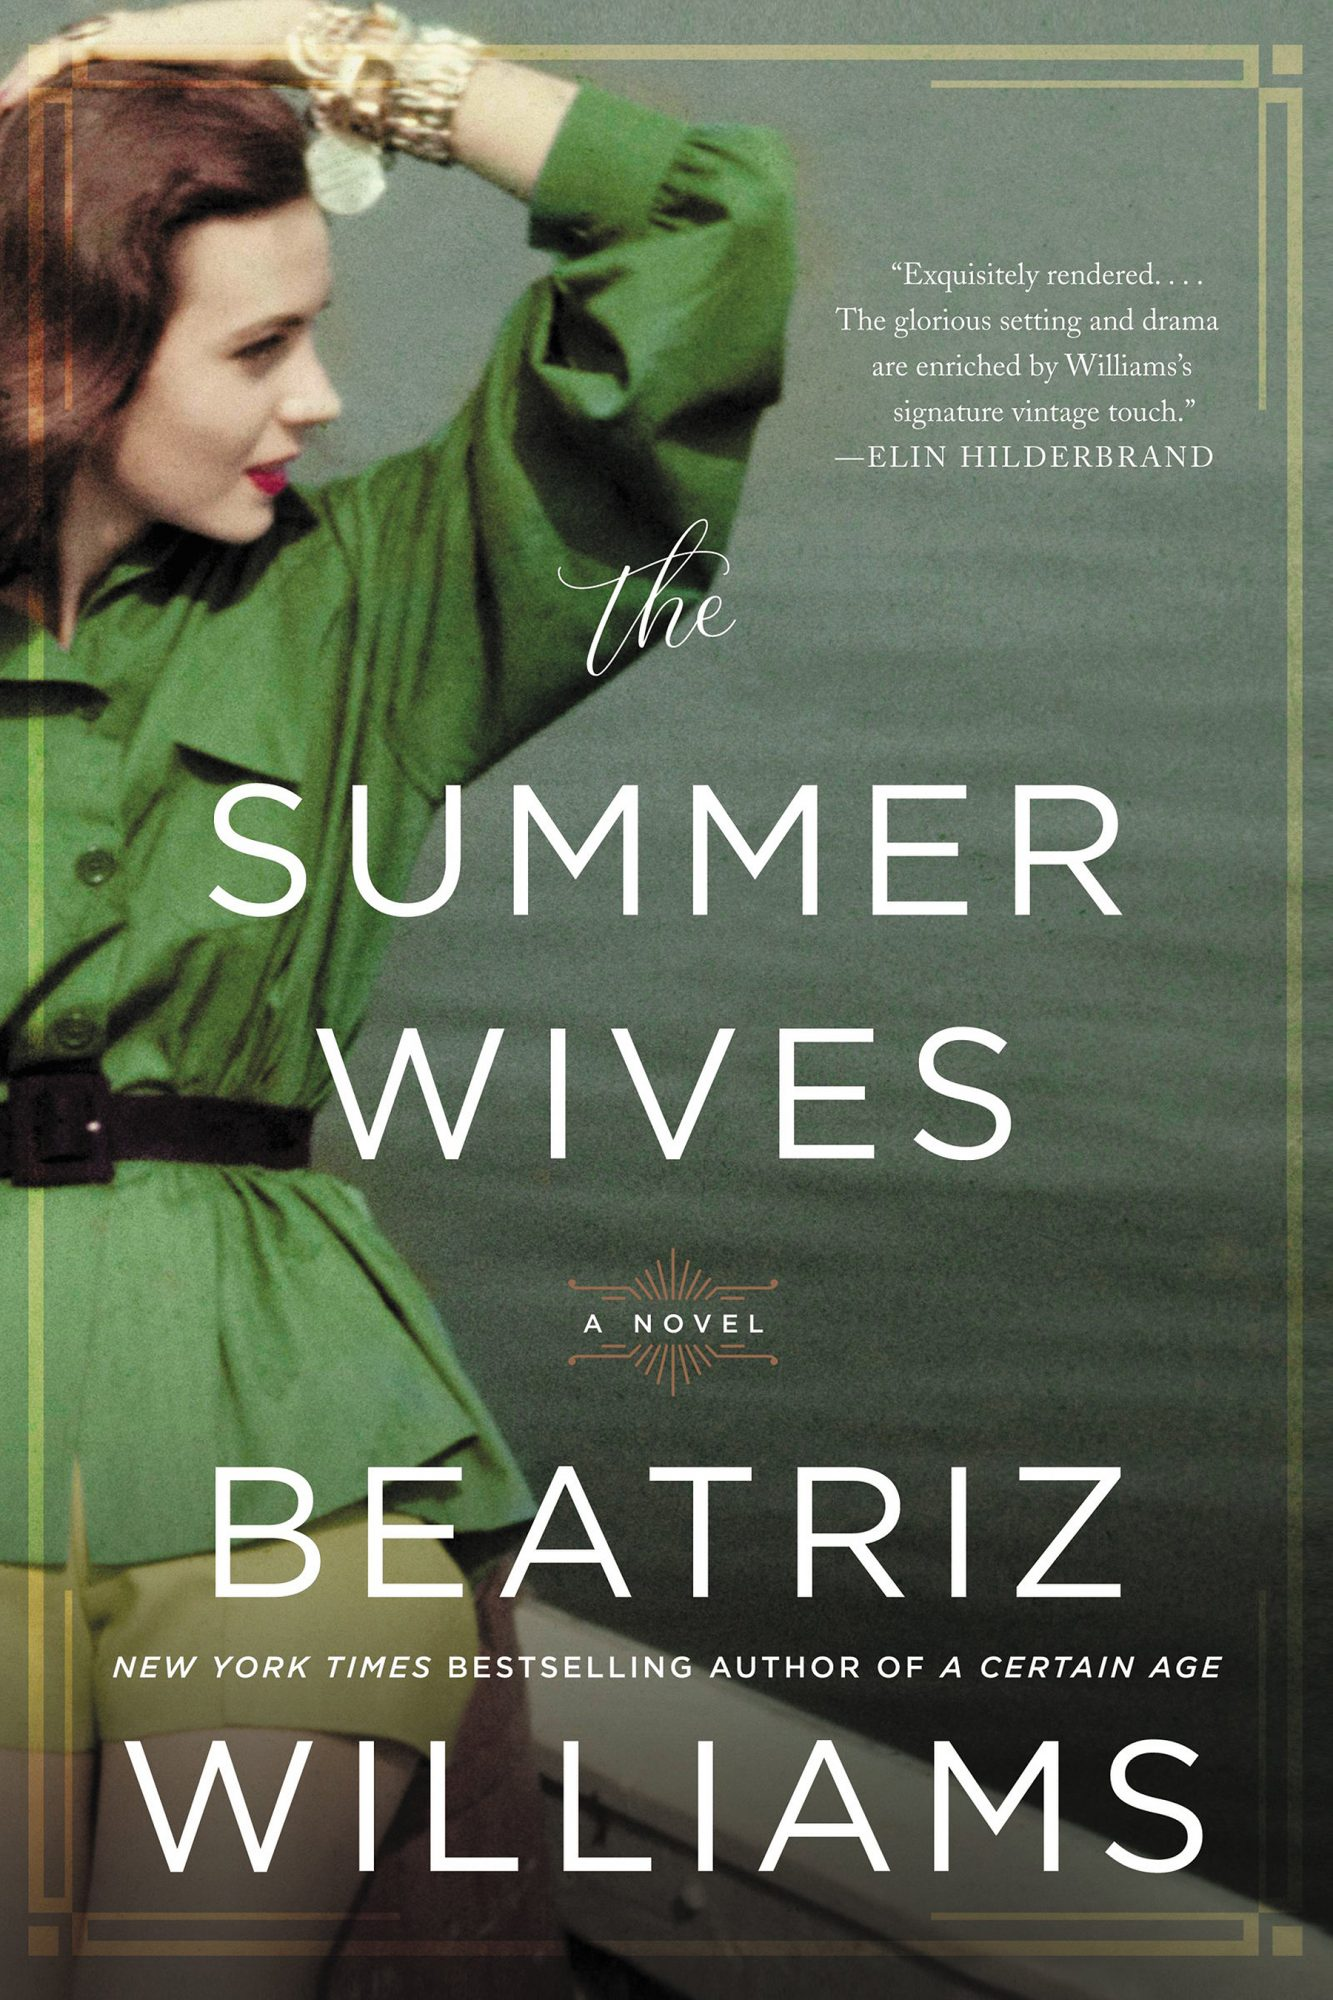 the summer wives by beatriz williamsCredit: Harper Collins